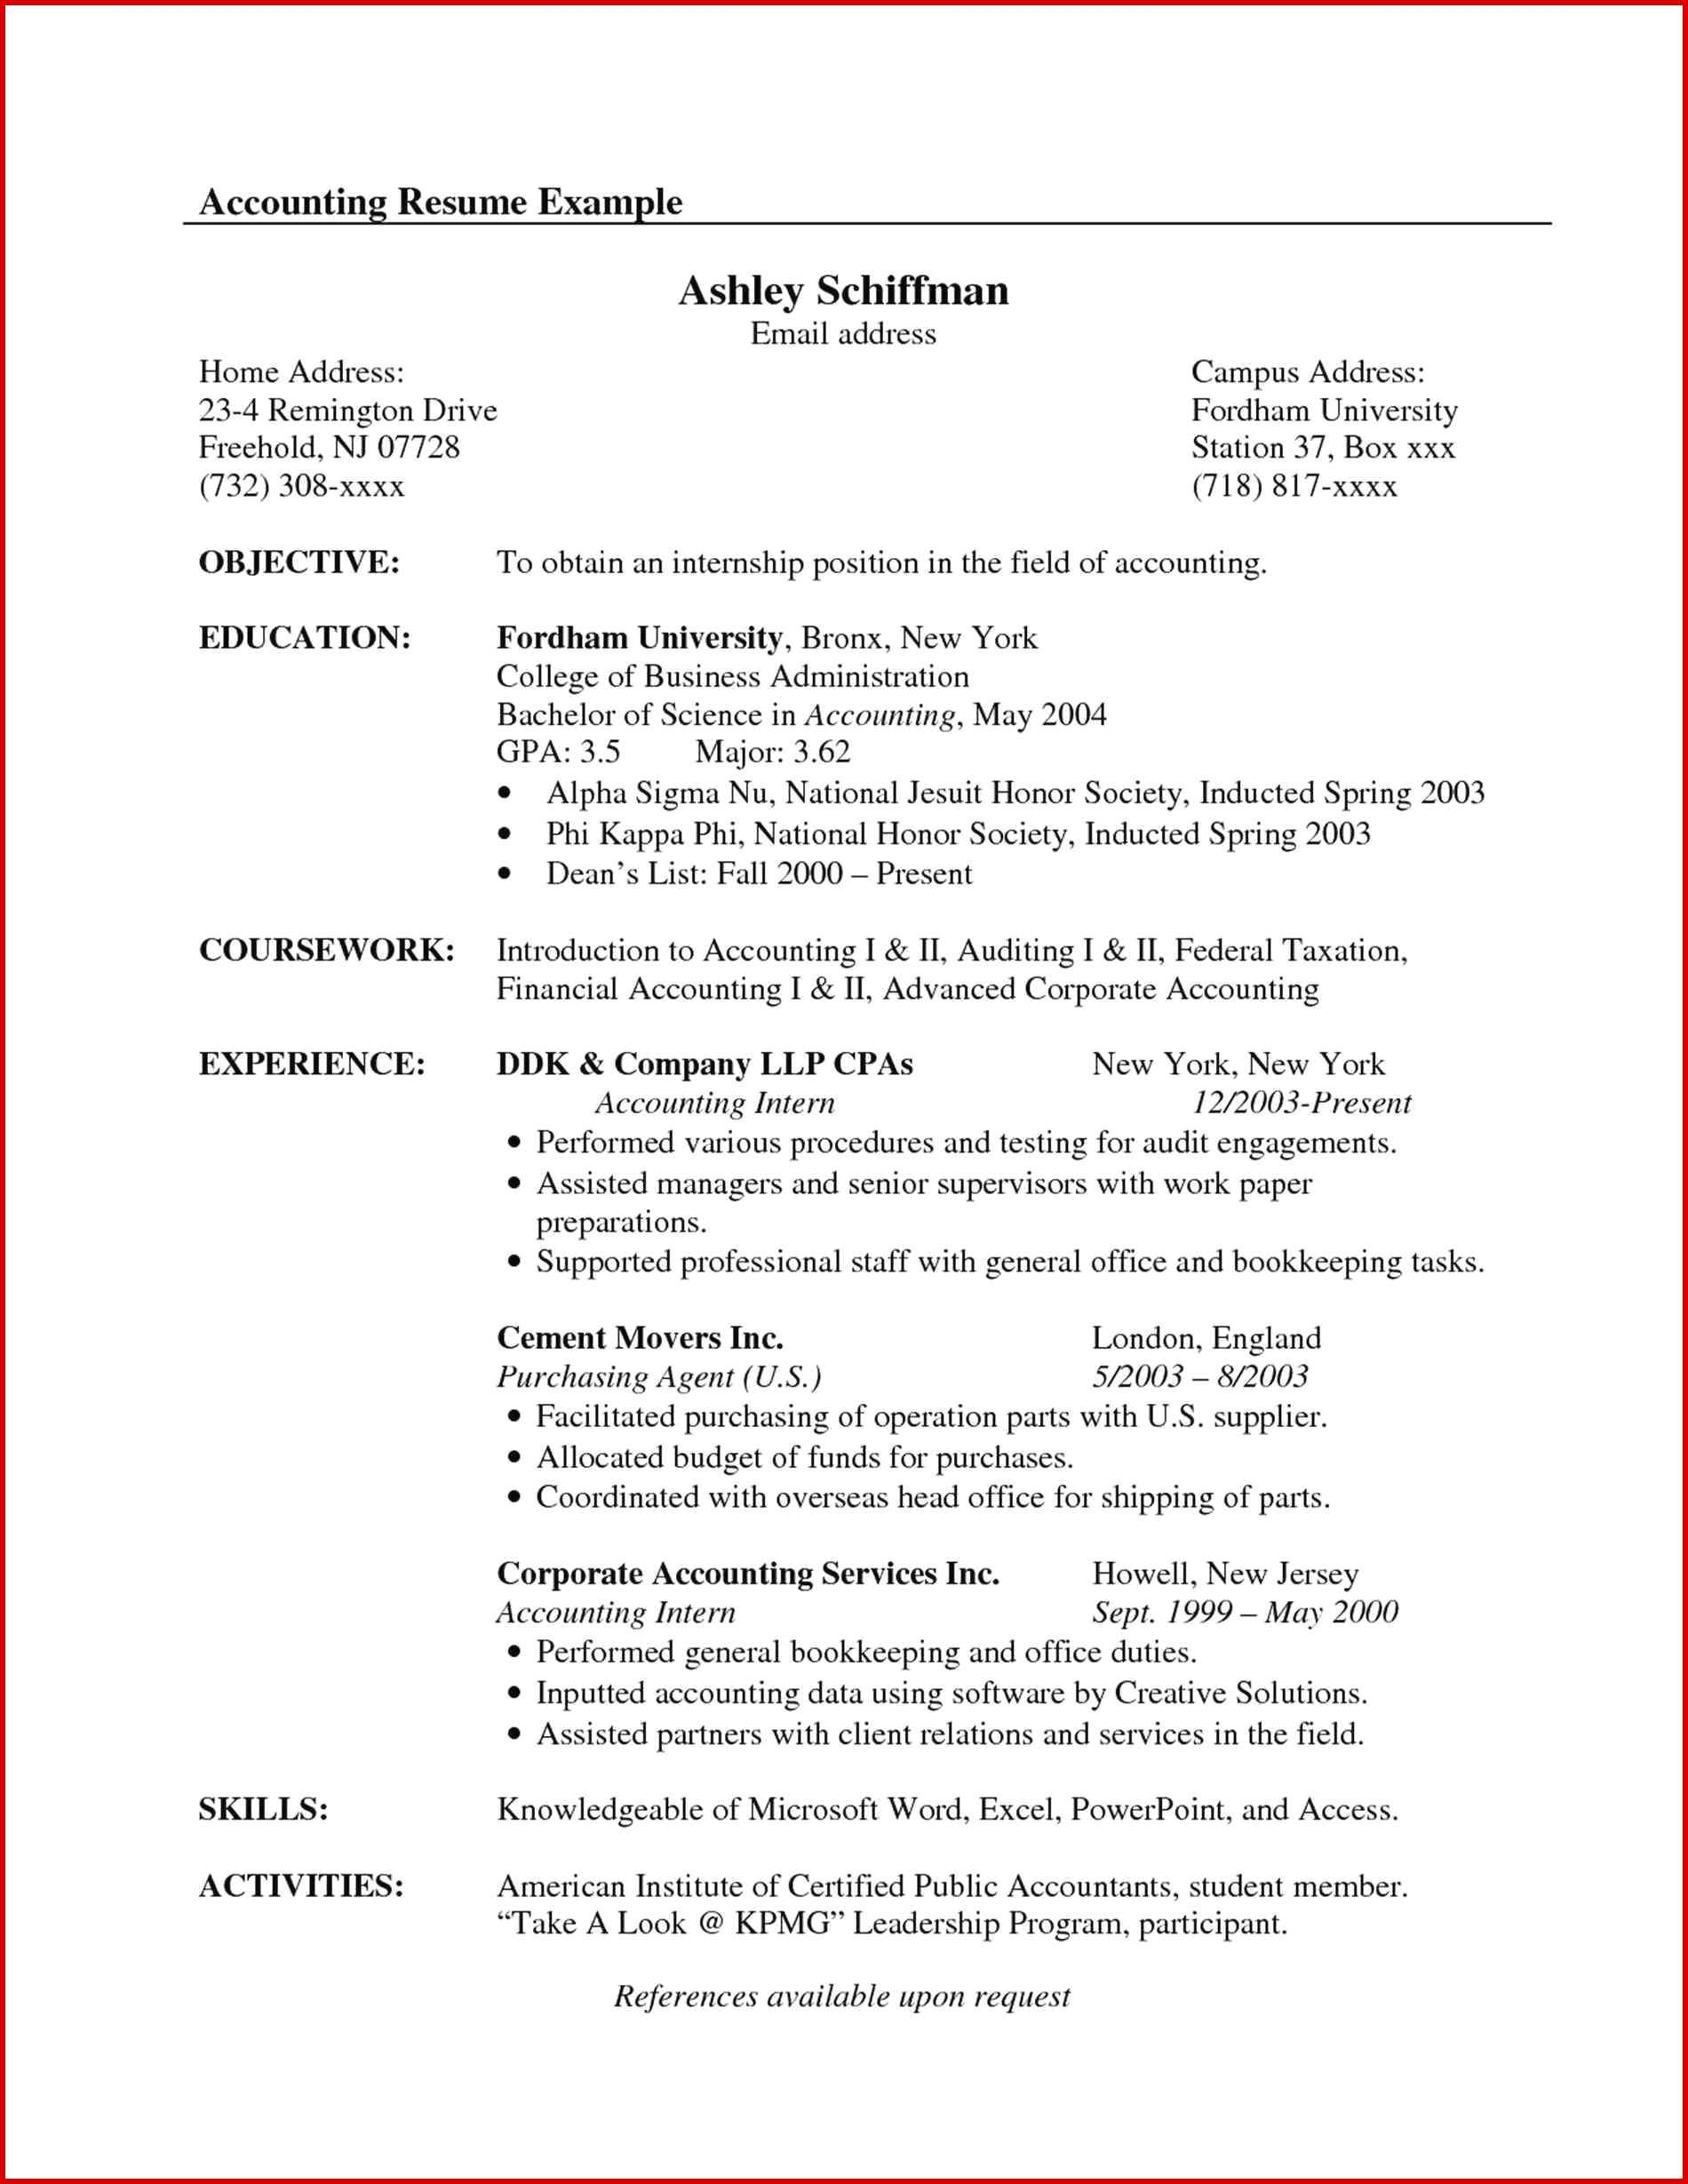 Resume Objective Example Accounting Certifications Best Of Objective Resume Samples Career 20 Accountant resume objective example wikiresume.com